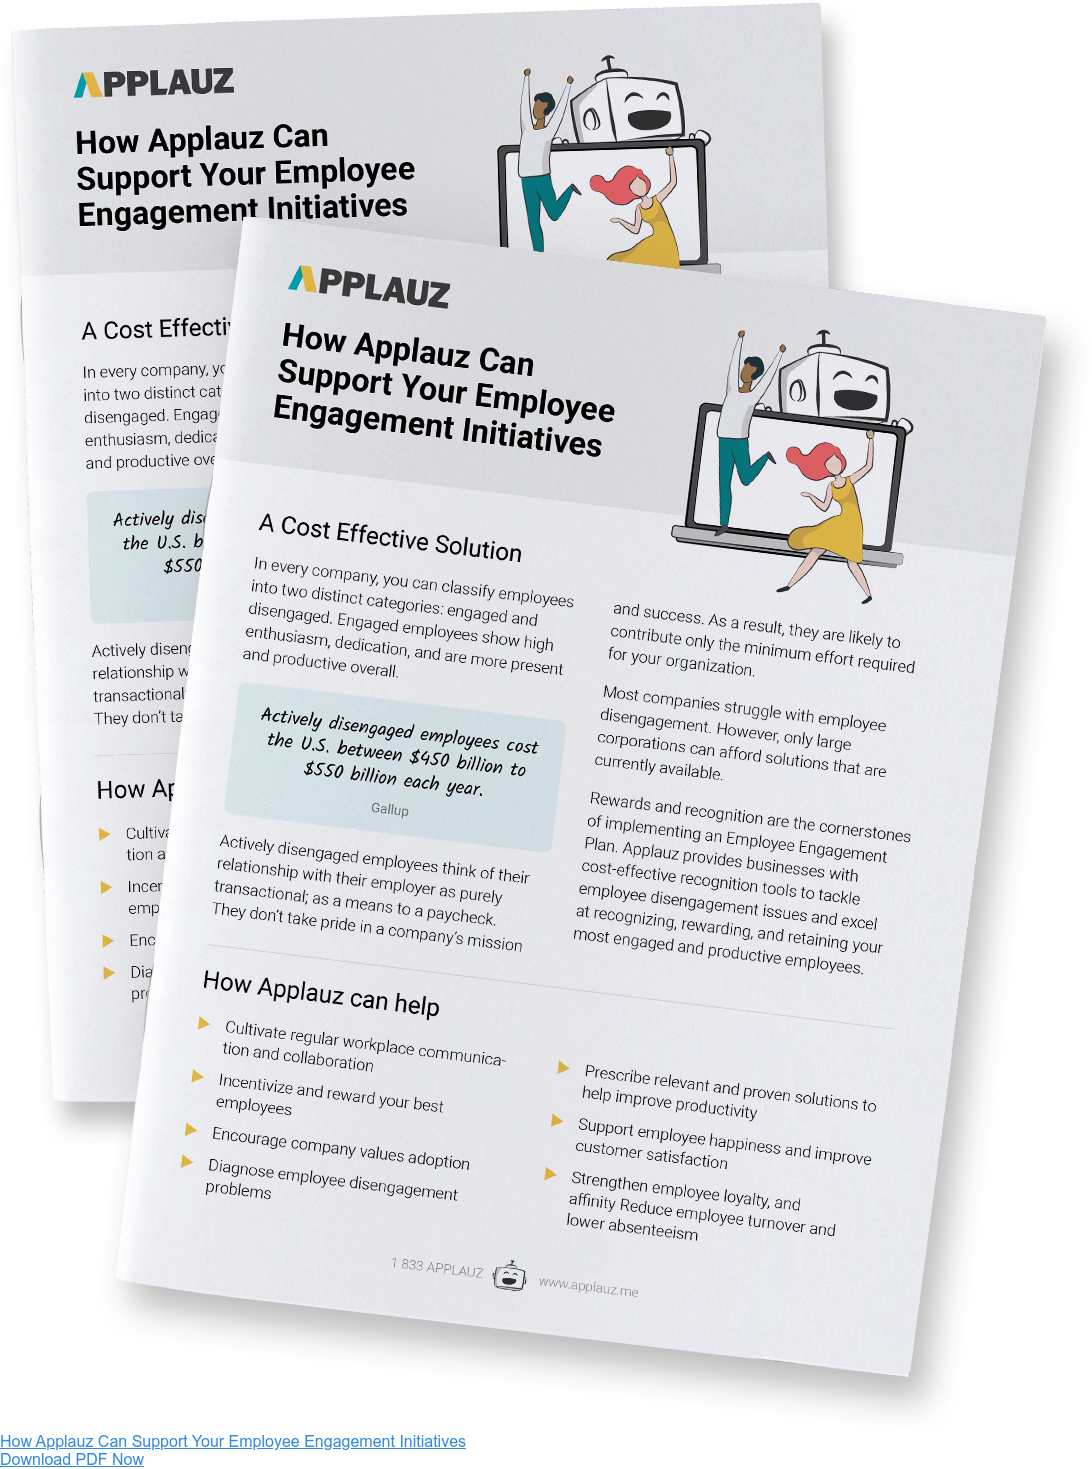 How can Applauz support your employee engagement initiatives - Download PDF Guide